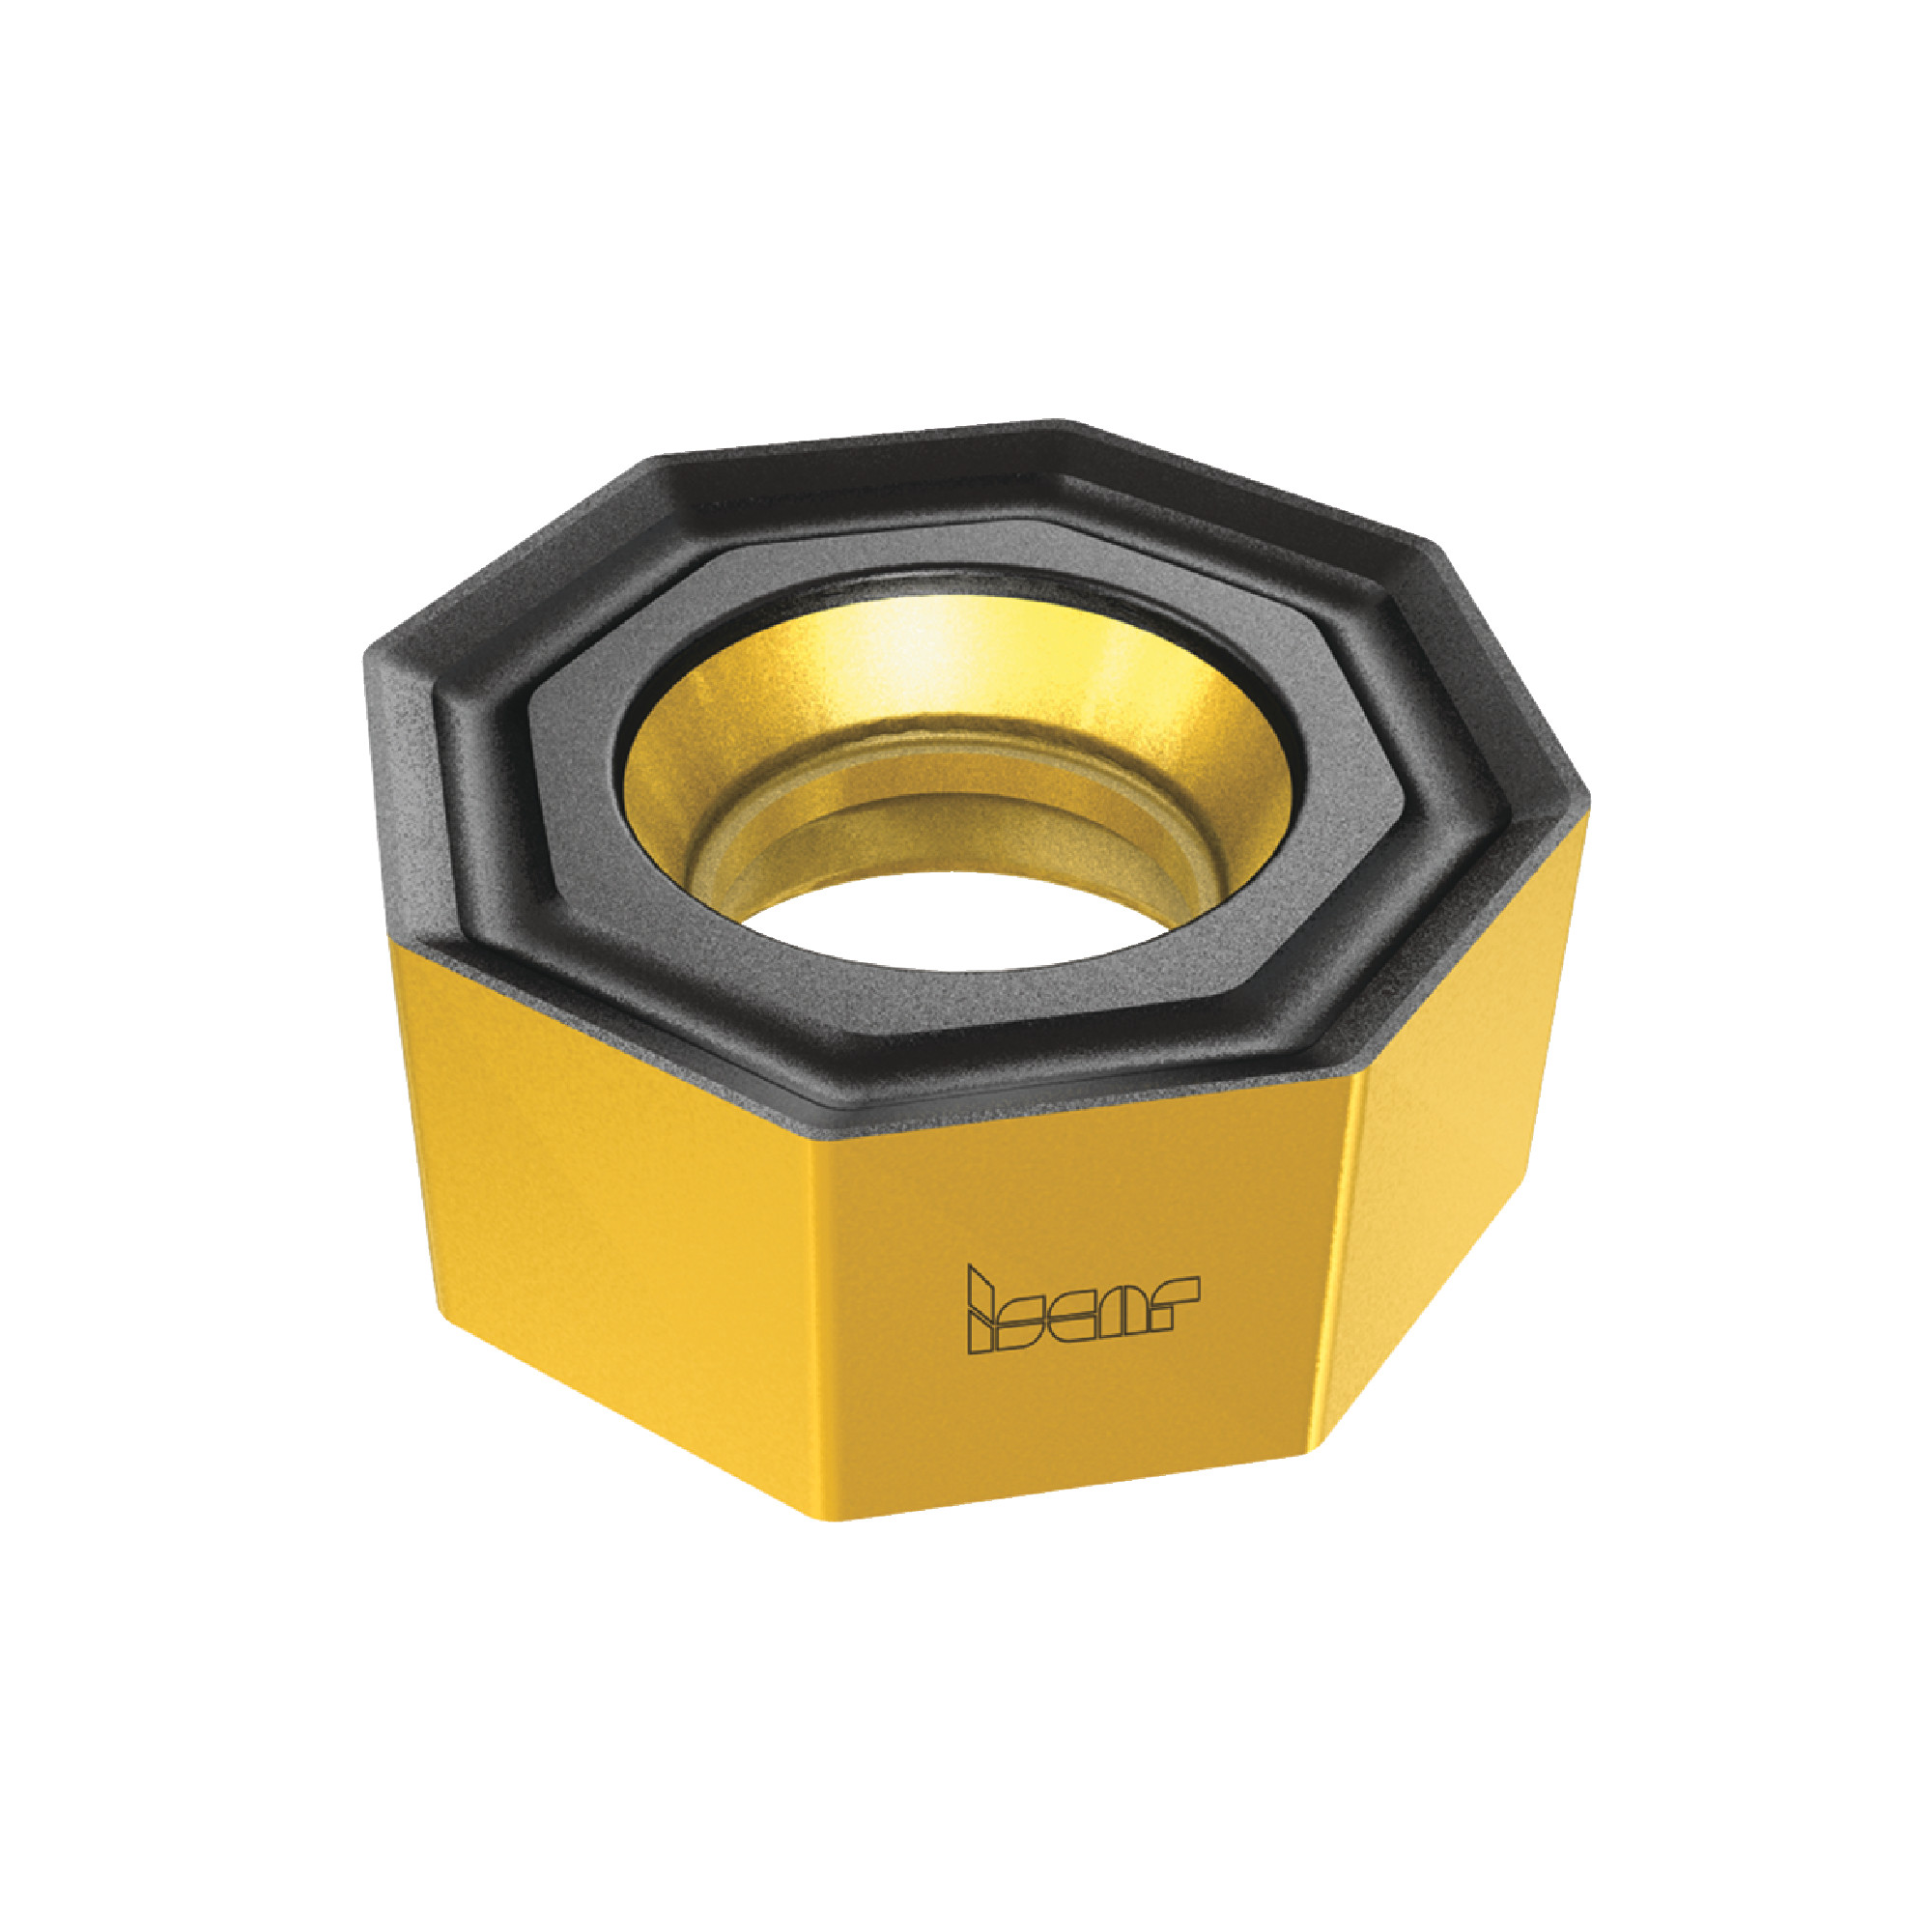 ISCAR - ONMU 050505-TN-MM IC830 Octagon / INDEXABLE Carbide MILLING INSERT